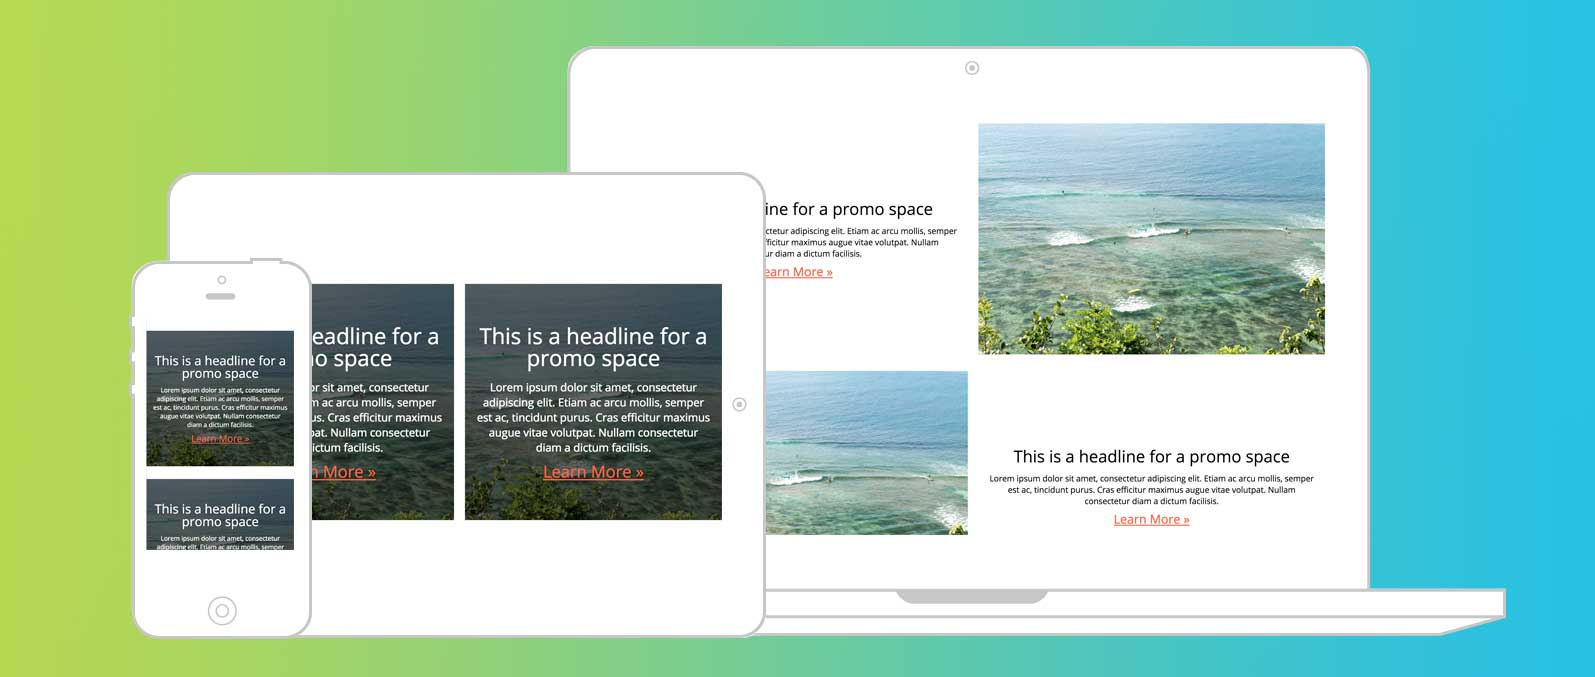 How To: Use CSS Grid to Mix and Match Design Patterns